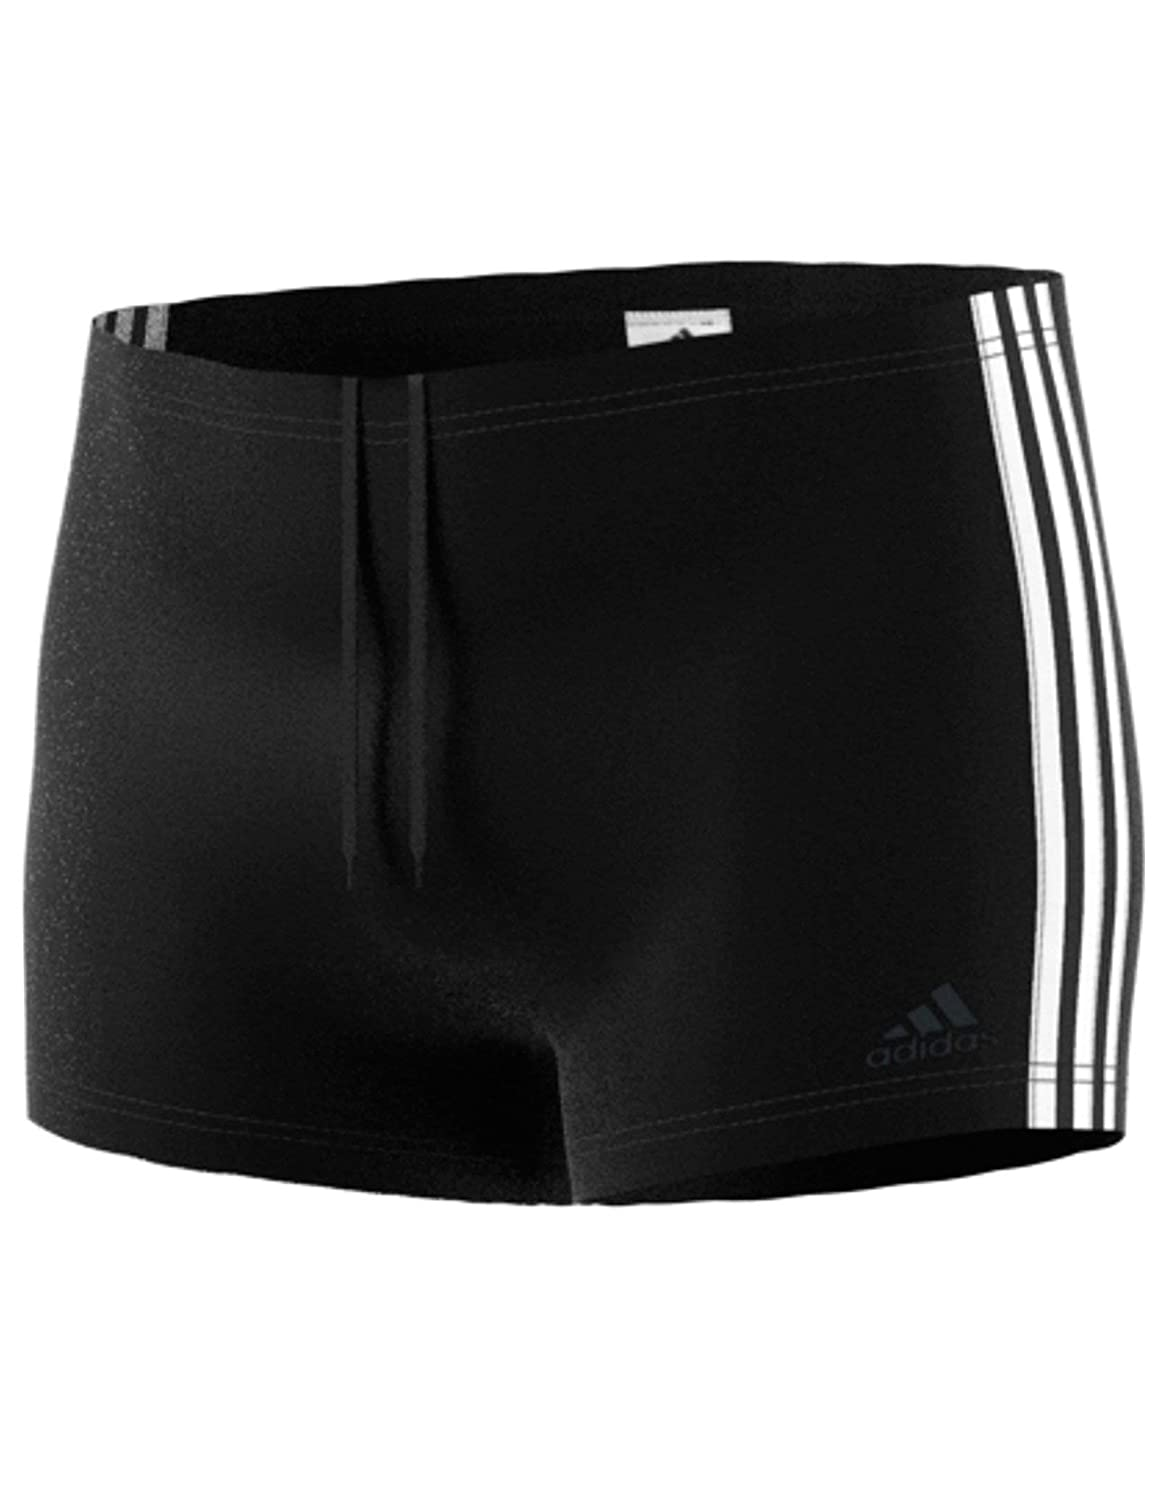 TALLA 8. adidas Fit Bx 3s Swimsuit, Hombre